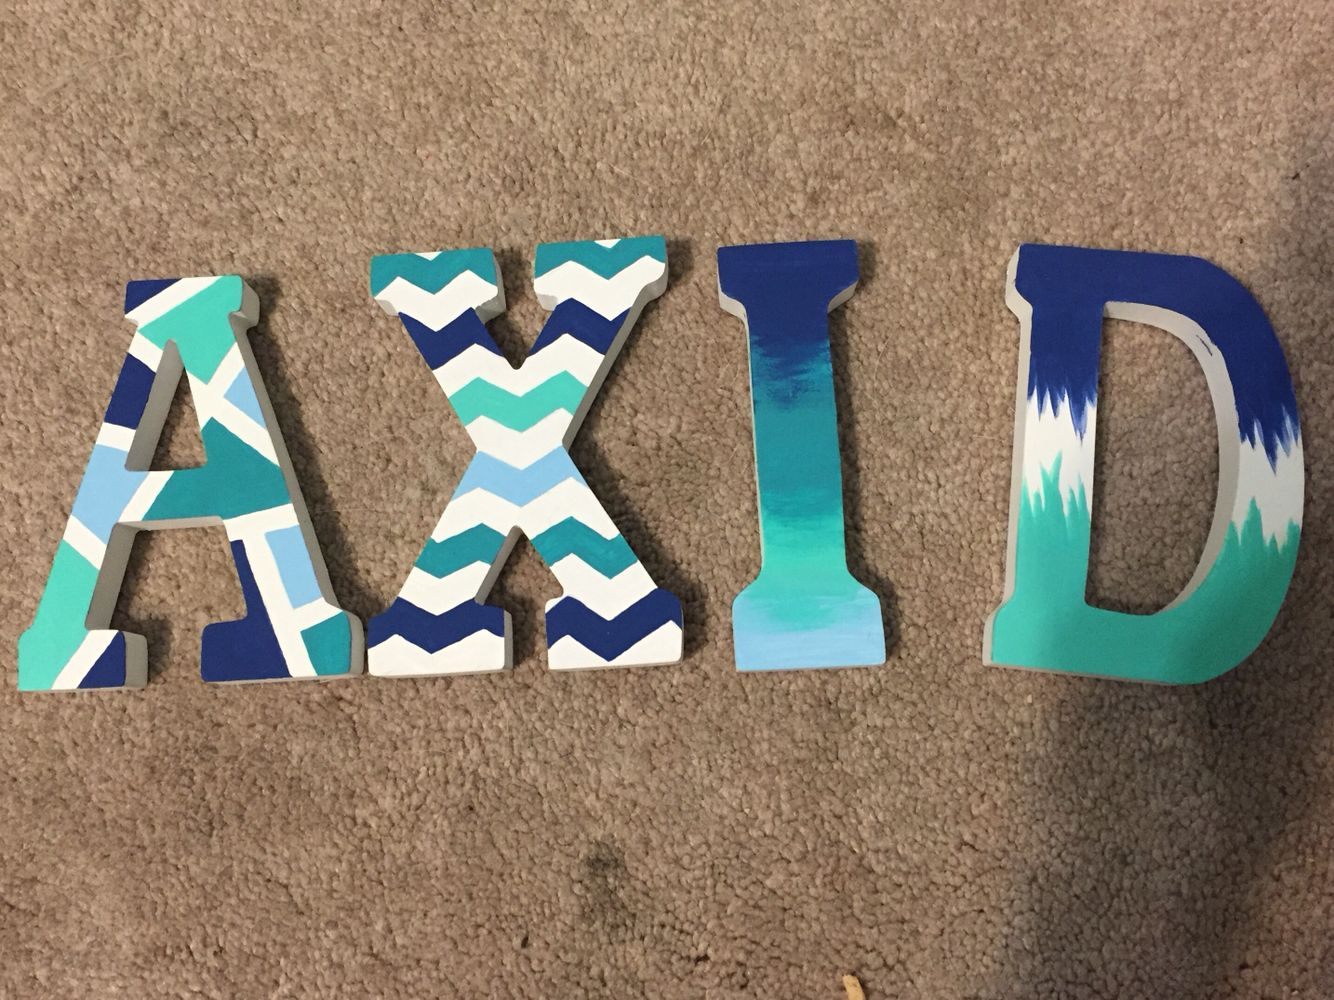 alpha xi delta wooden painted letters not my original design but my letters